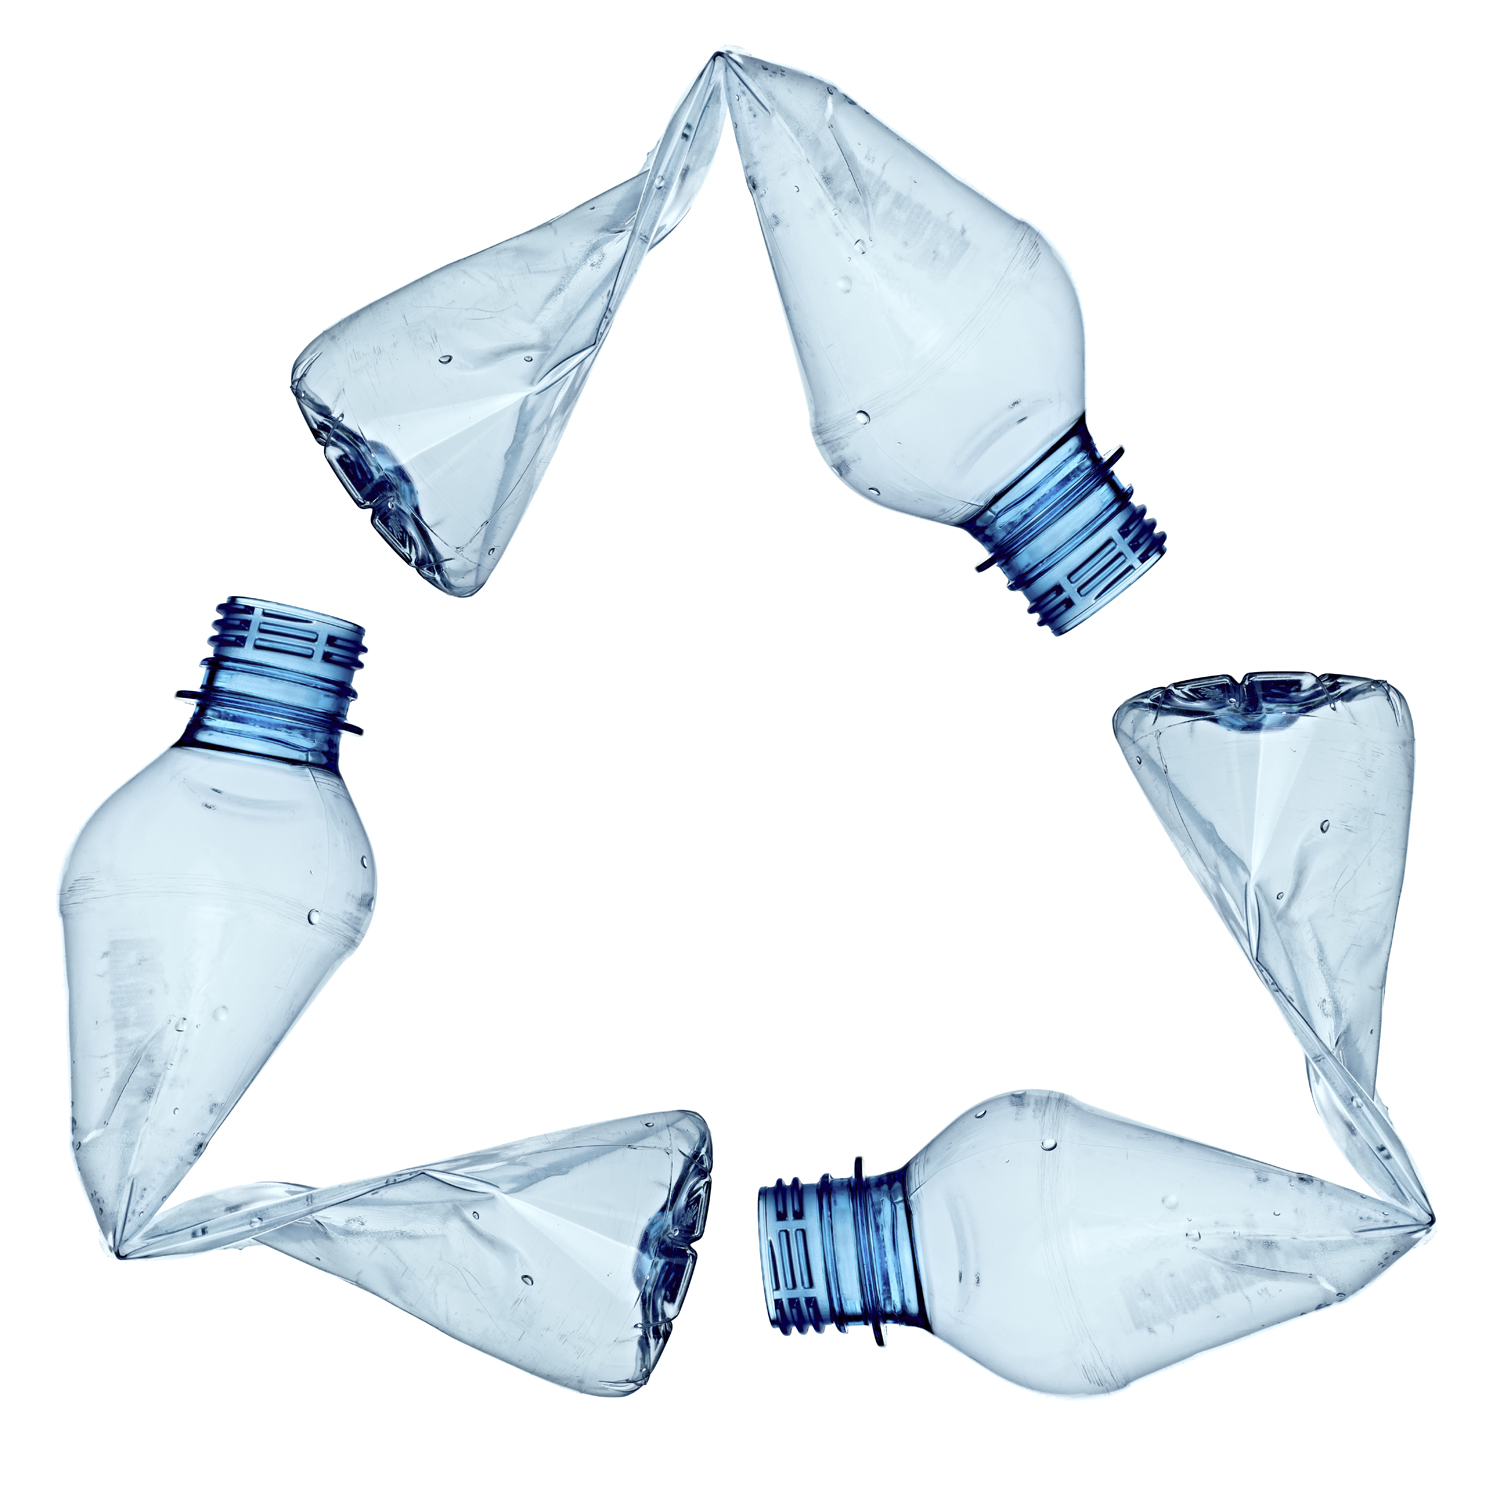 Recycle Symbol 5 - ClipArt Best